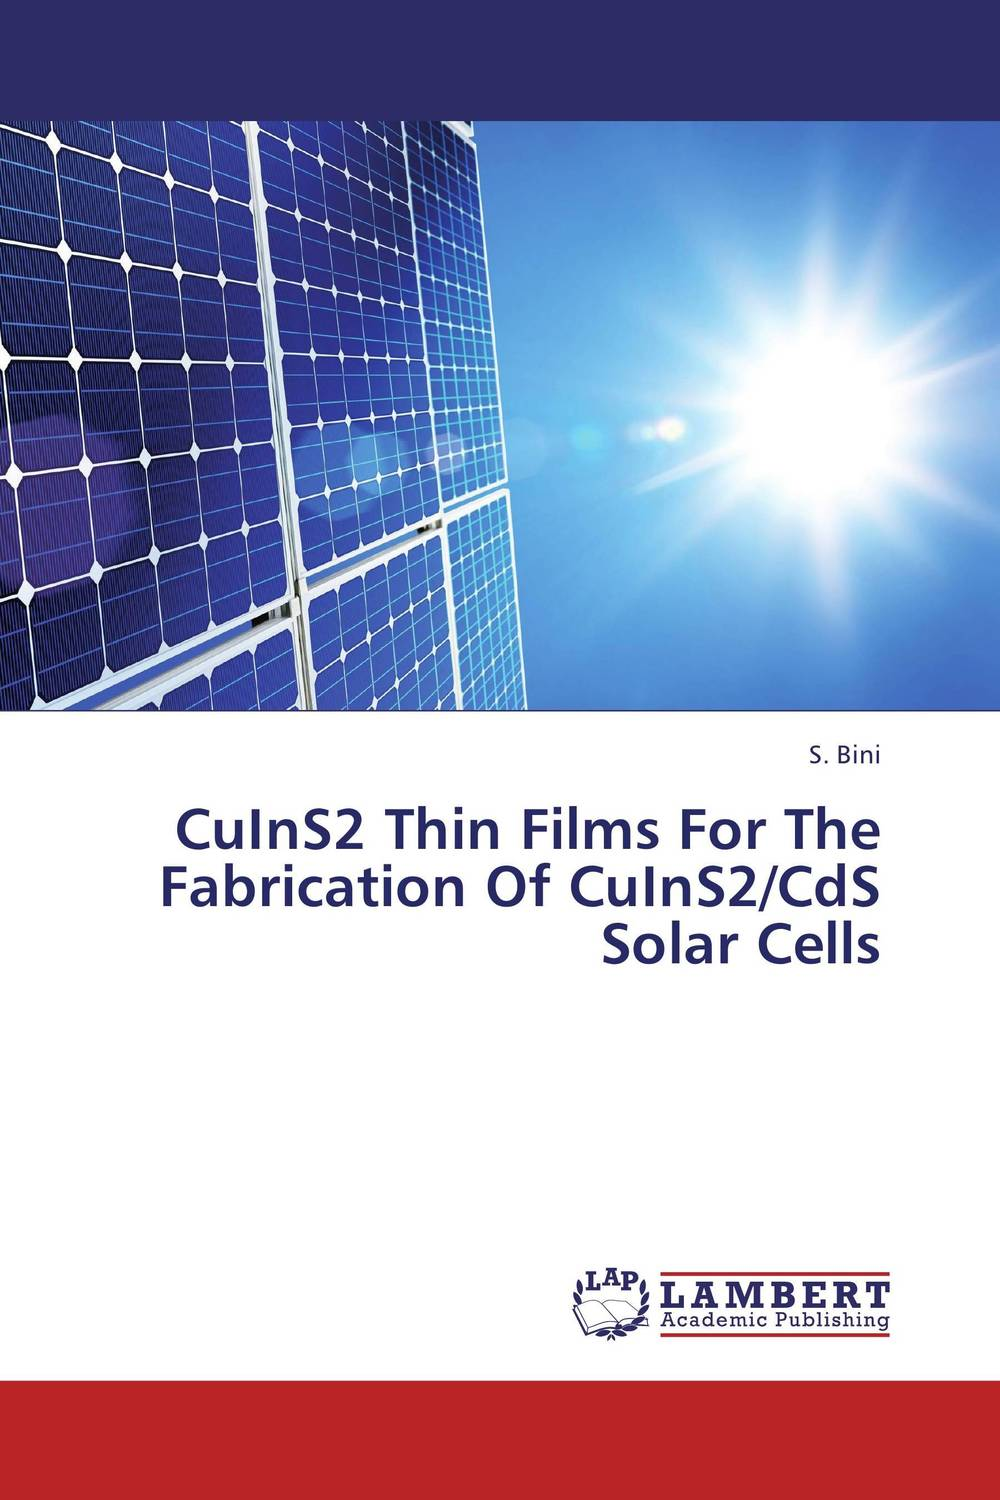 CuInS2 Thin Films For The Fabrication Of CuInS2/CdS Solar Cells zno cds core shells optical sensor fabrication using chemical method